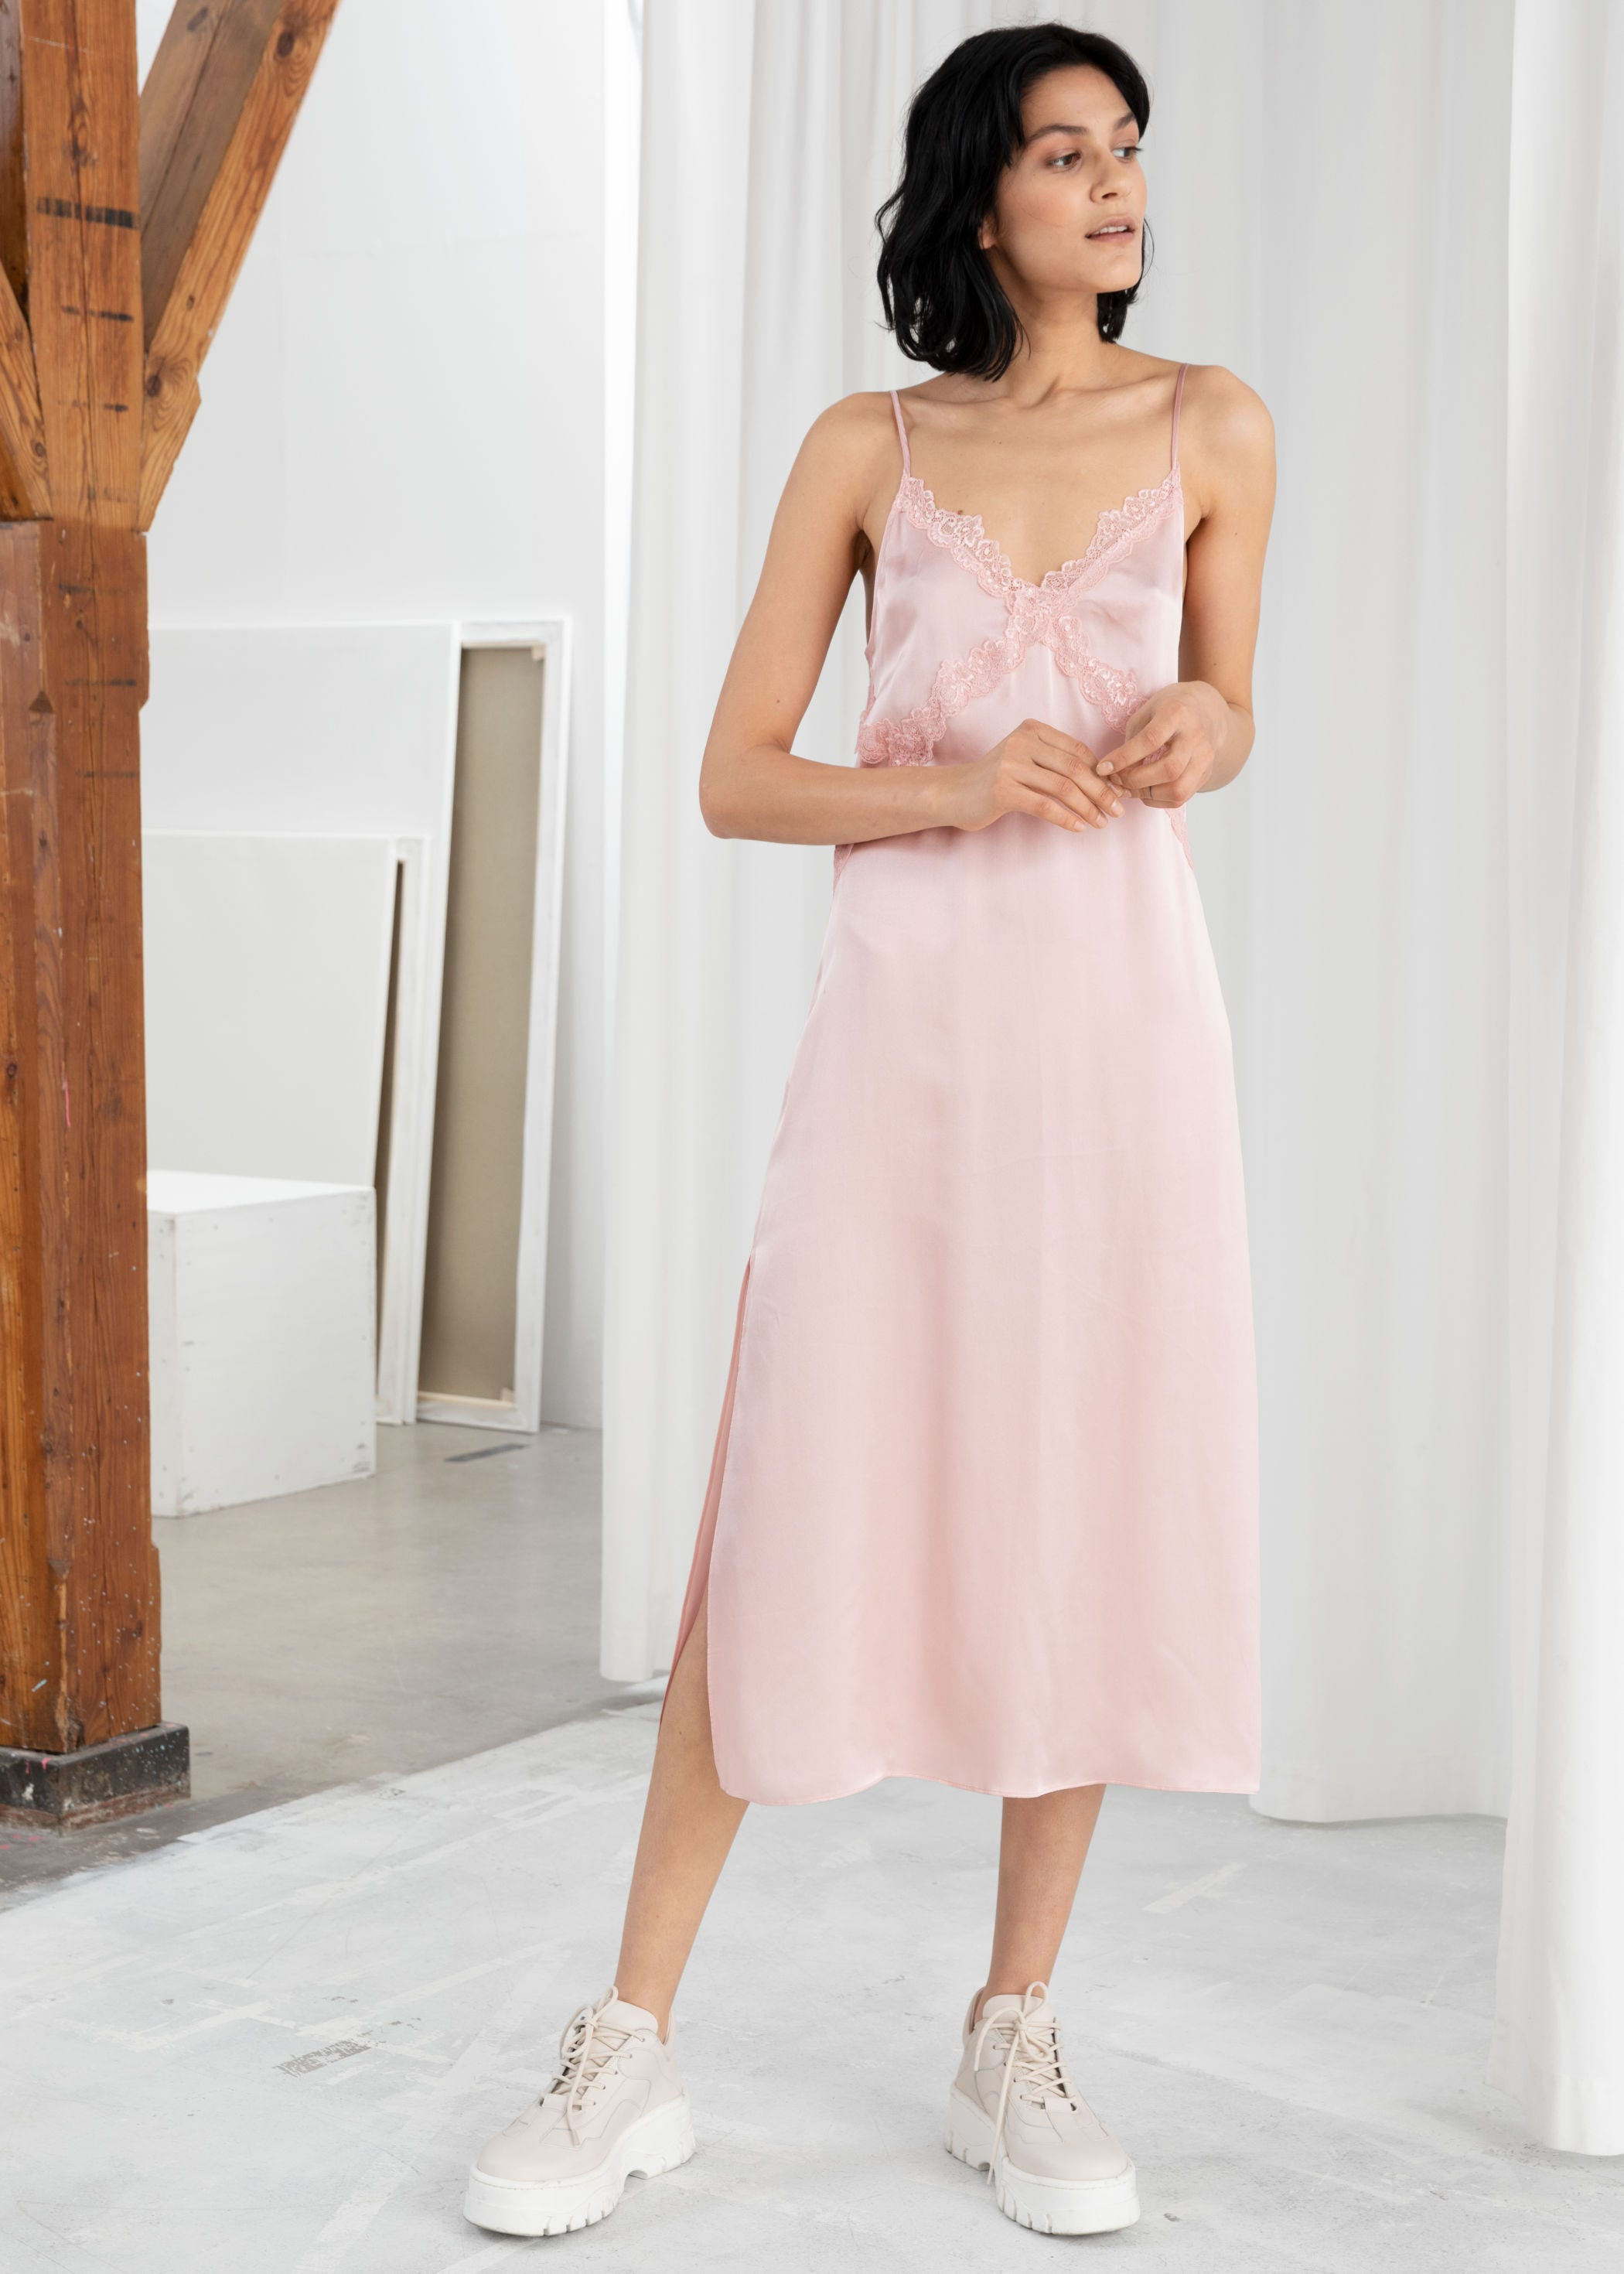 What To Wear To A Casual Wedding Dresses Outfit Ideas